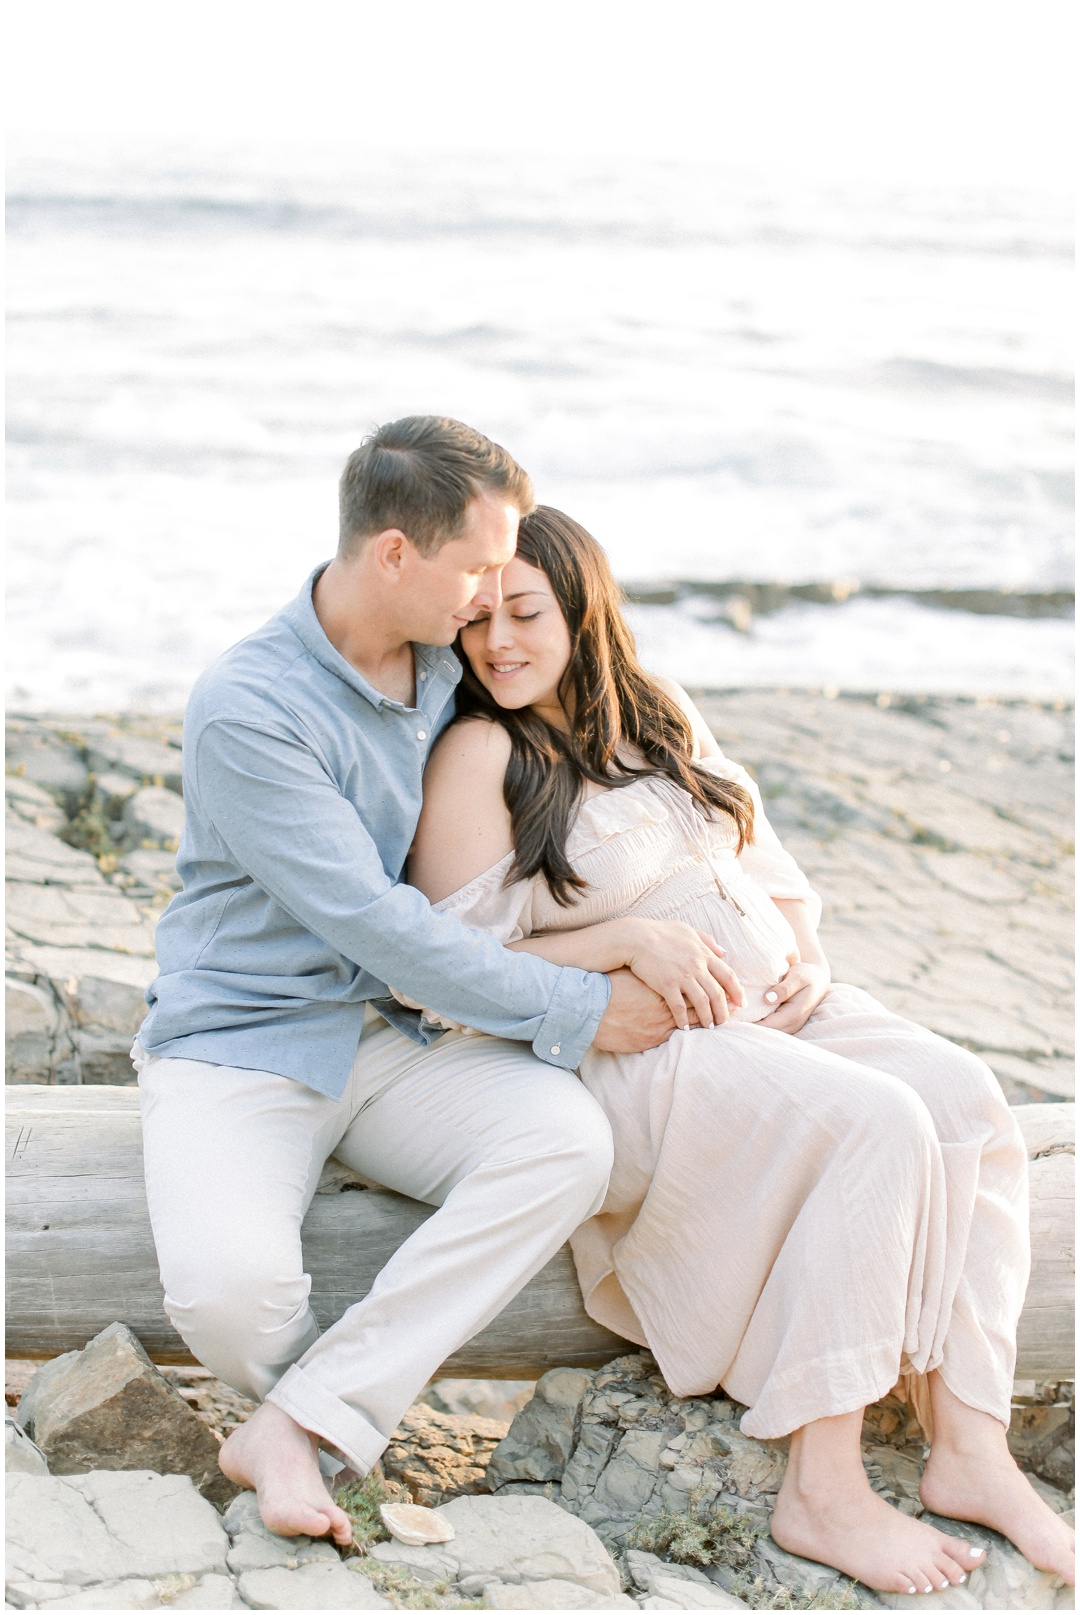 Newport_Beach_Newborn_Light_Airy_Natural_Photographer_Newport_Beach_Photographer_Orange_County_Maternity_Photographer_Cori_Kleckner_Photography_Newport_Beach_Photographer_Candice_Byle_Candice_Fillippini_Kevin_Fillippini__4169.jpg